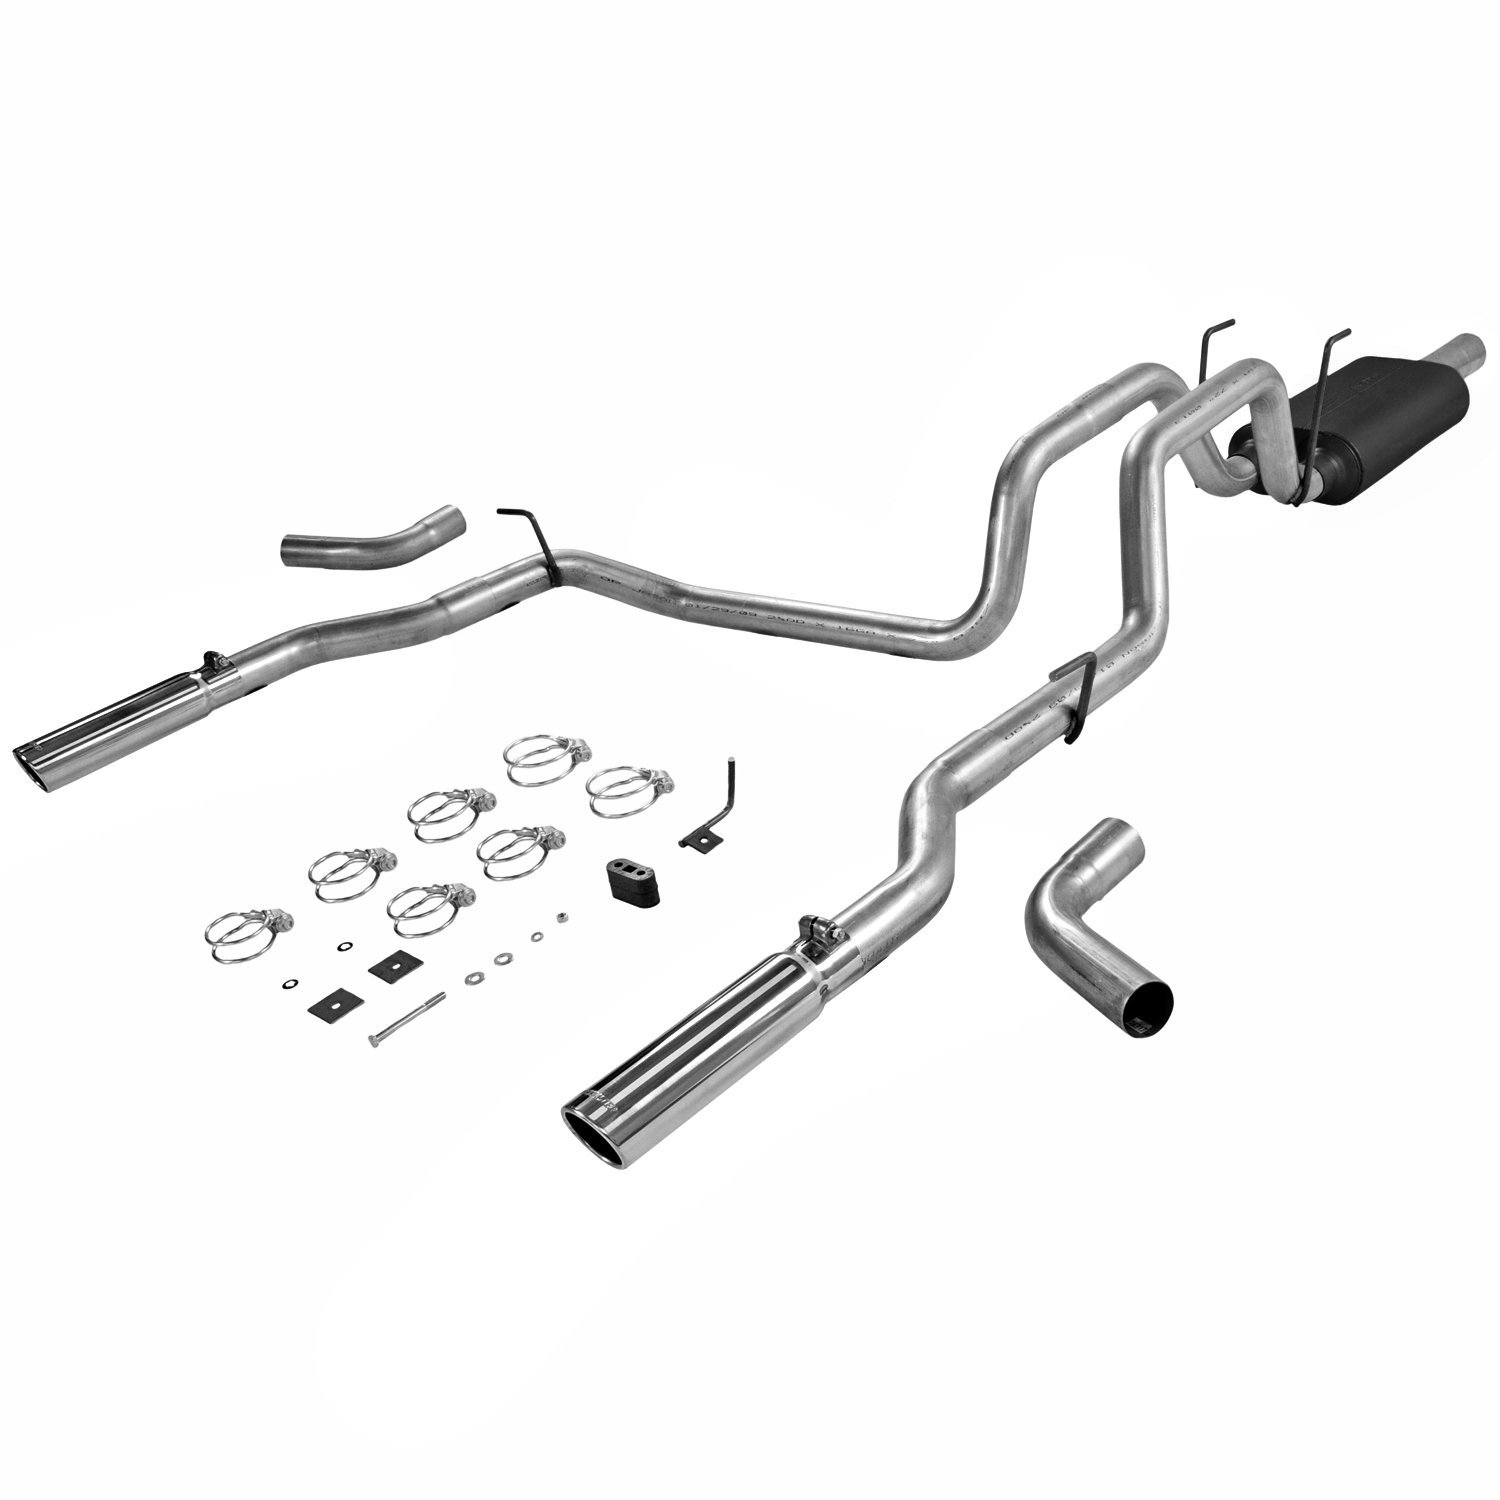 Flowmaster 17424 - Flowmaster American Thunder Exhaust Systems - Truck/SUV